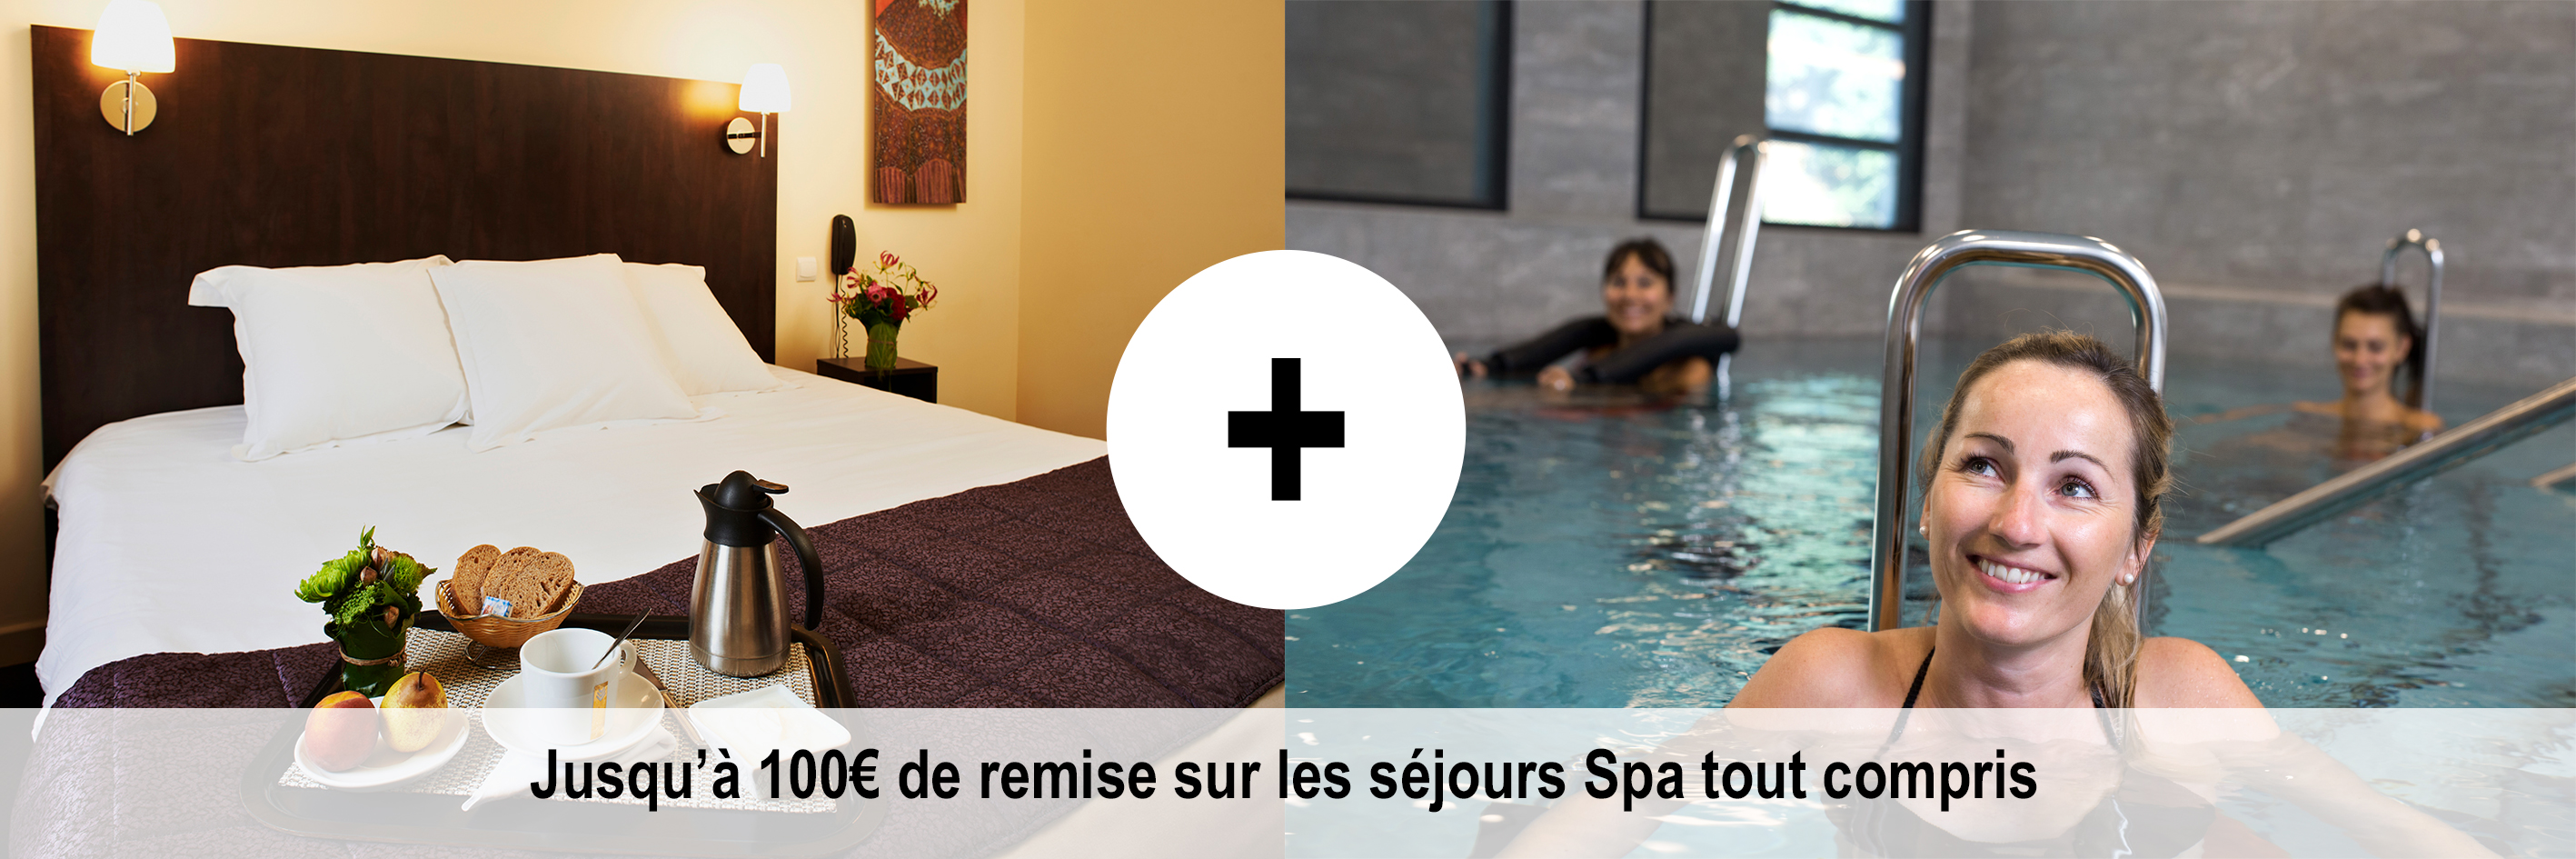 Offre-spciale-Savoy-Spa-t-2019